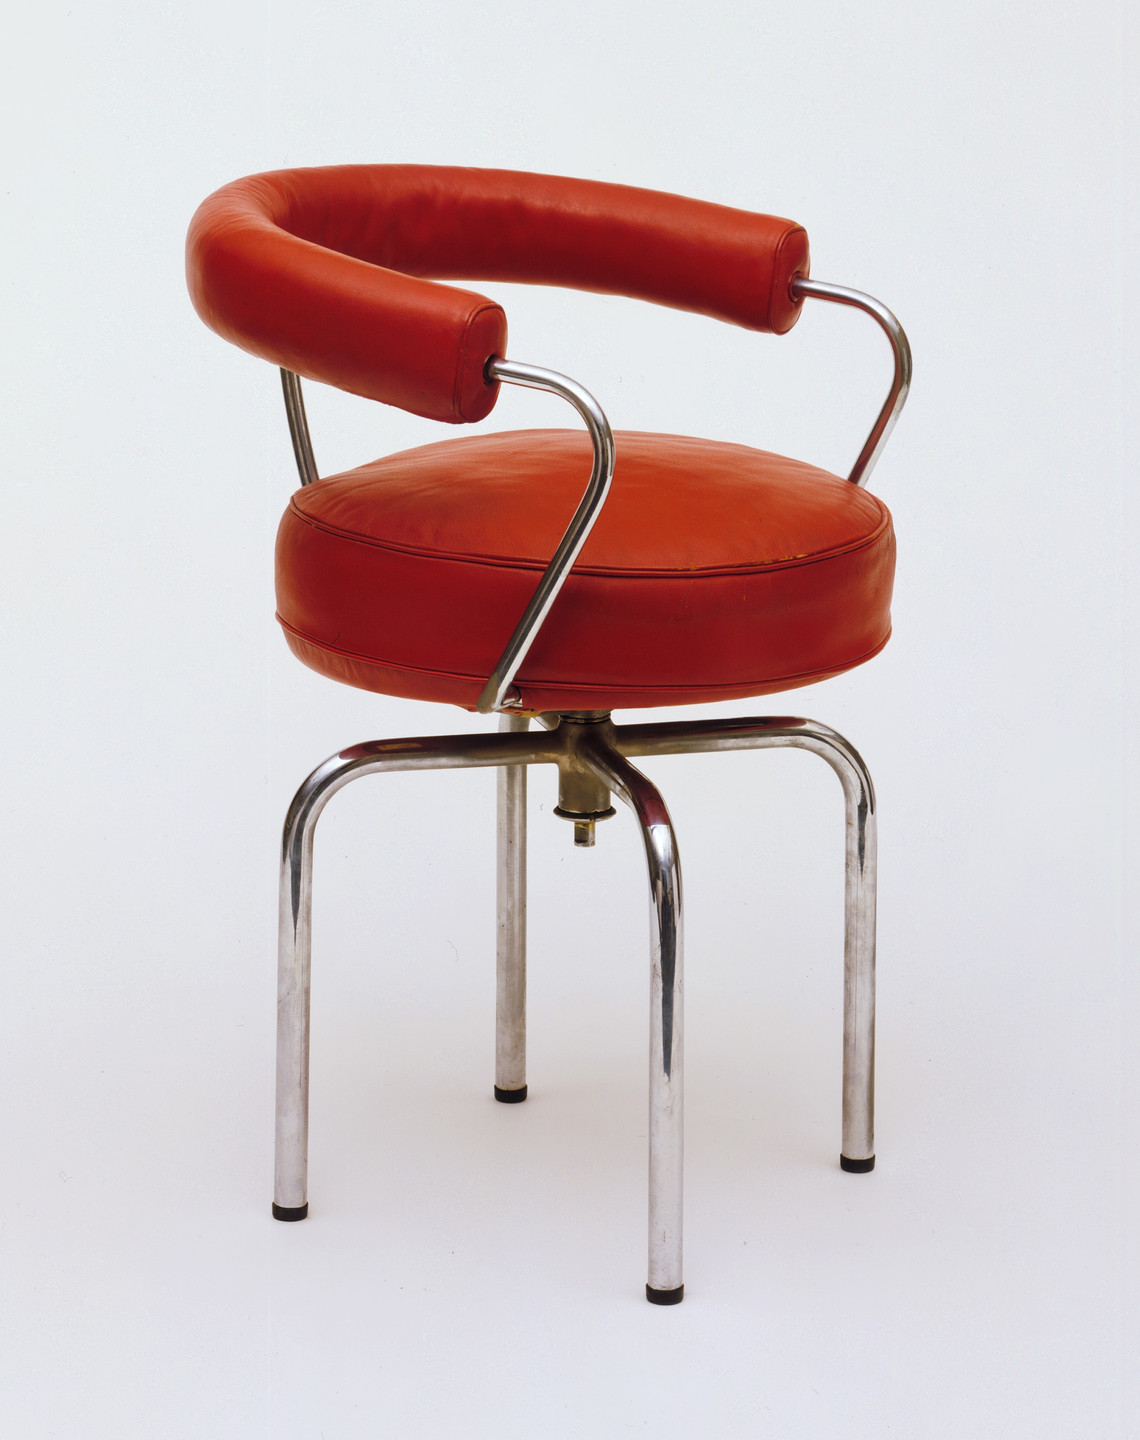 Charlotte Perriand. Revolving Armchair. 1928